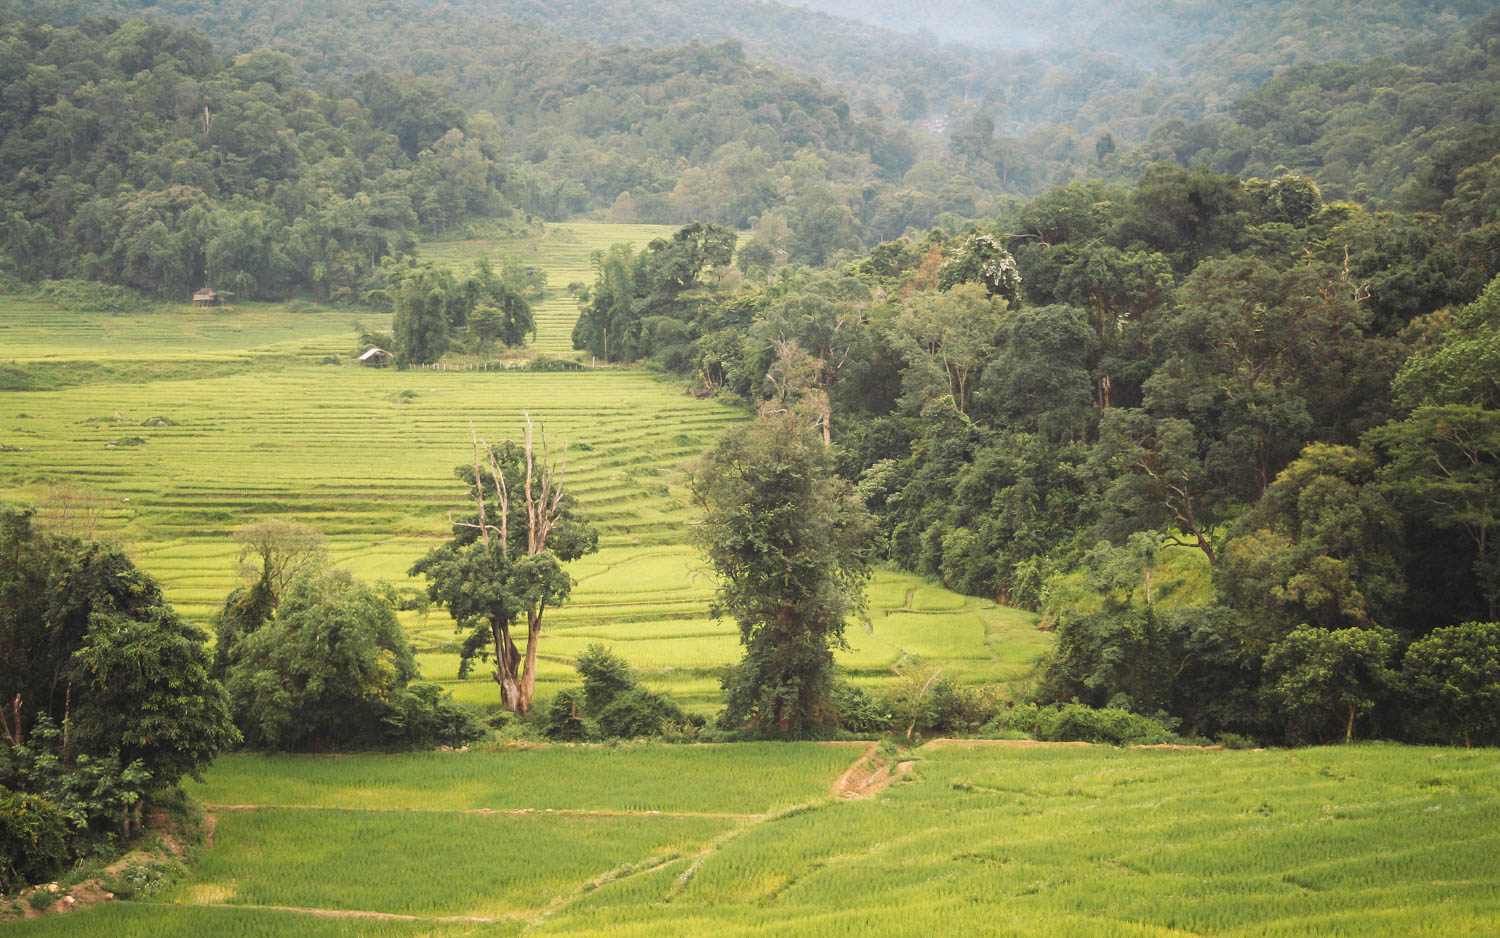 Lush green rice paddies during the rainy season near Doi Inthanon National Park, Chiang Mai, Thailand